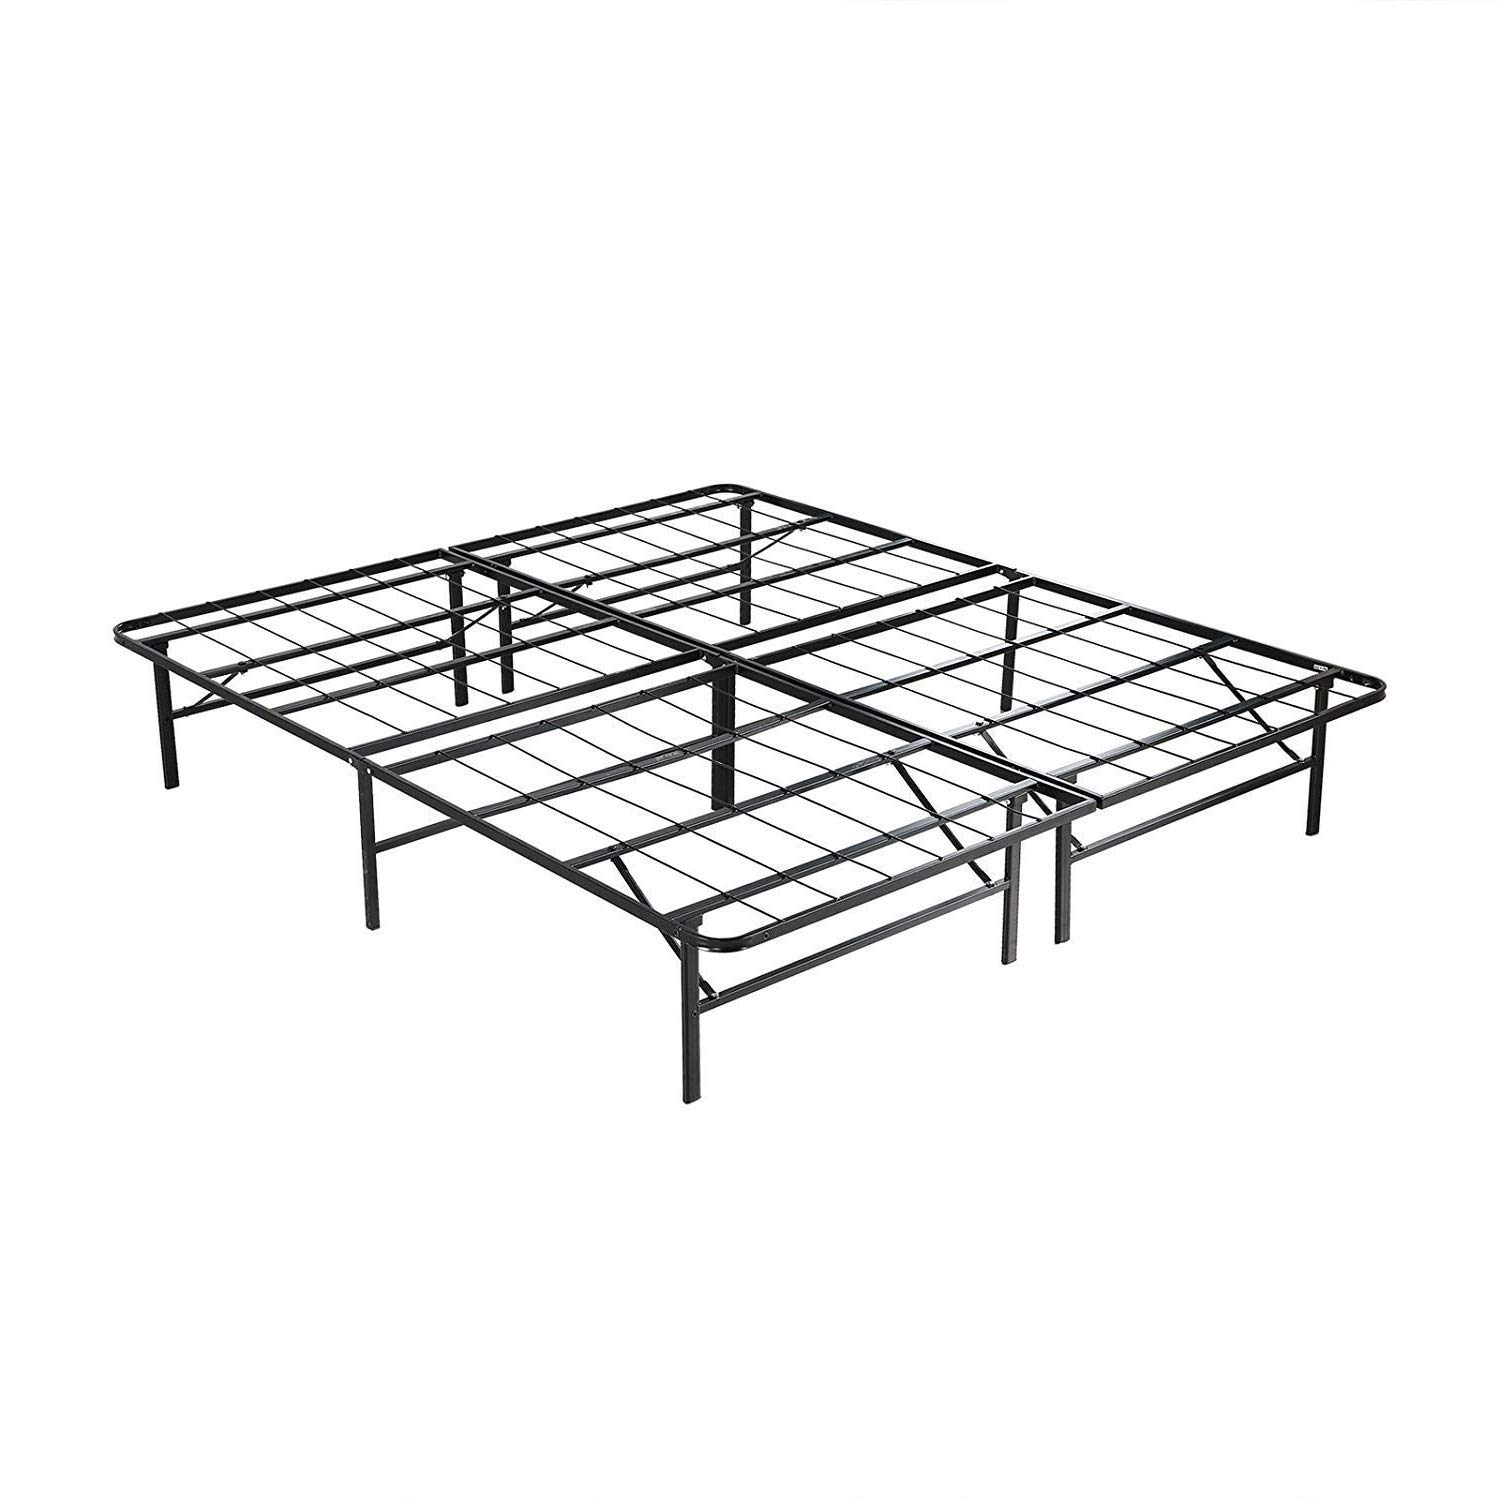 Mecor 14 Inch Foldable Metal Bed Frames Deluxe/Platform Bed/Mattress Foundation,Sturdy,Quiet Noise-Free, Full Size